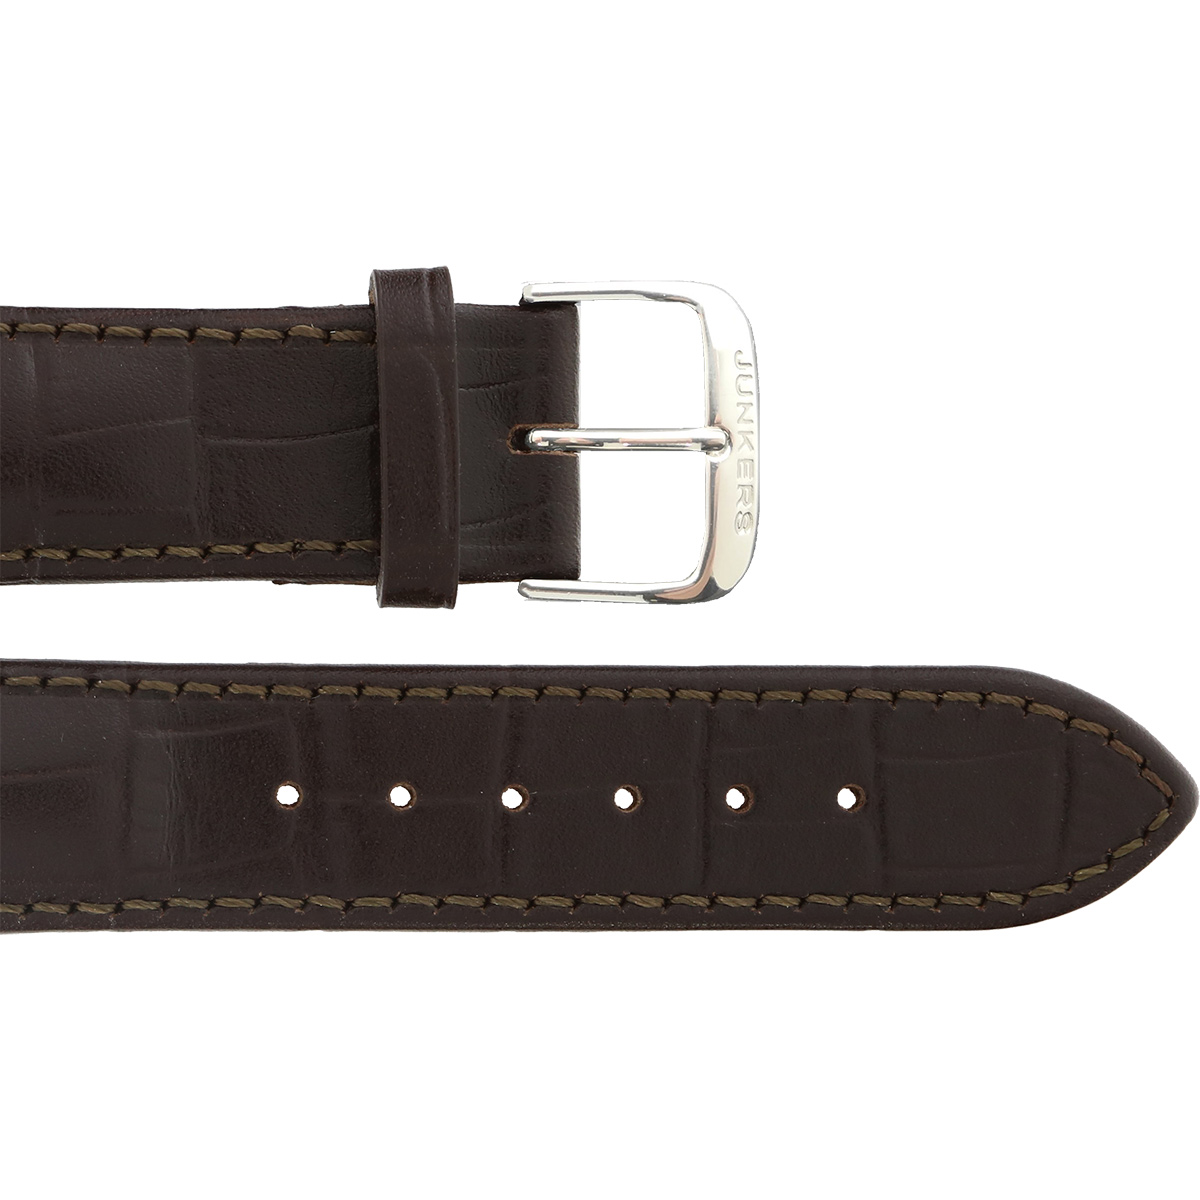 Leather wristband croco darkbrown 22 mm silver thorn buckle